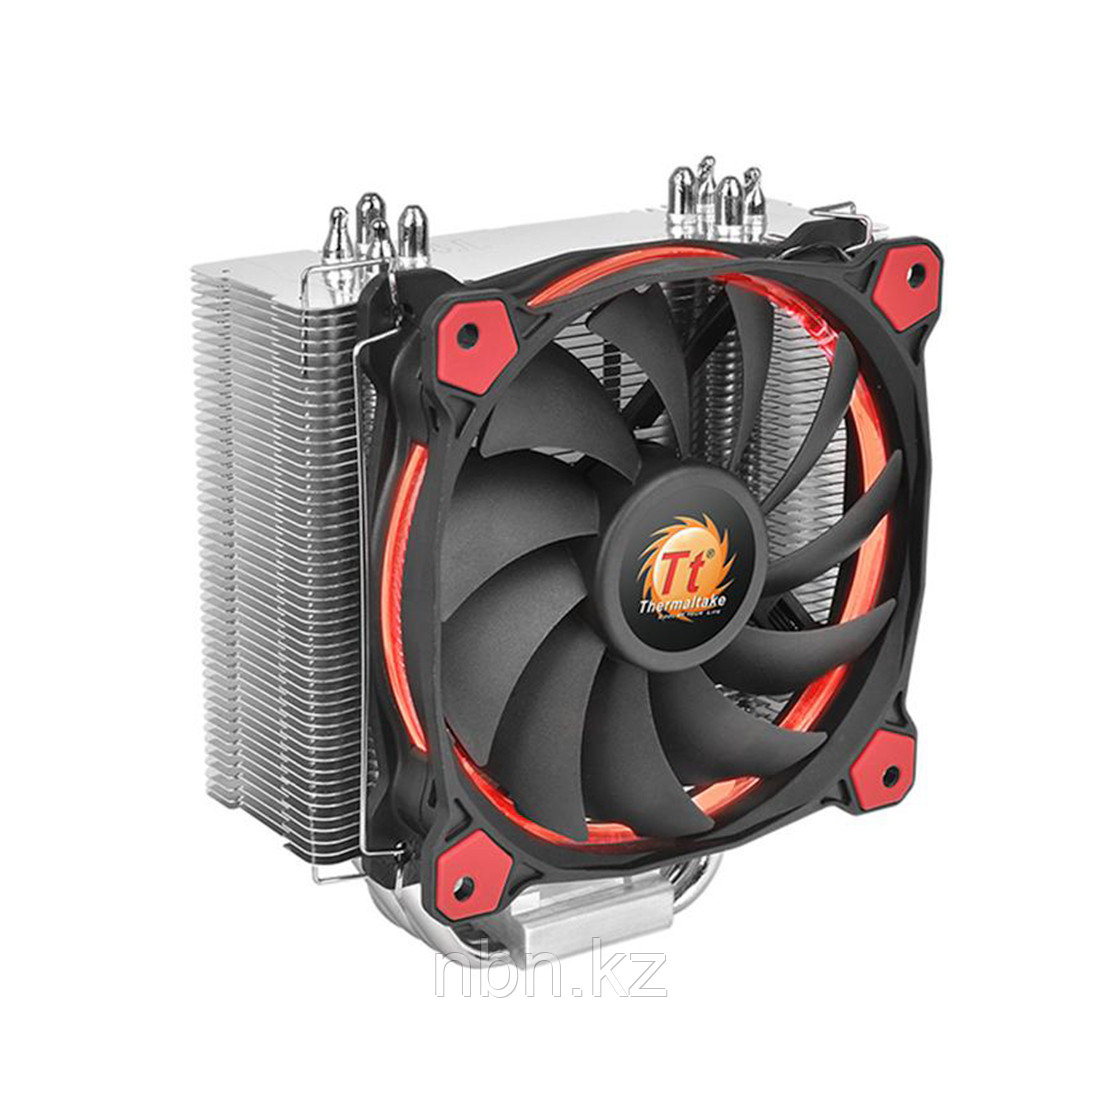 Кулер для процессора Thermaltake Riing Silent 12 Red Air